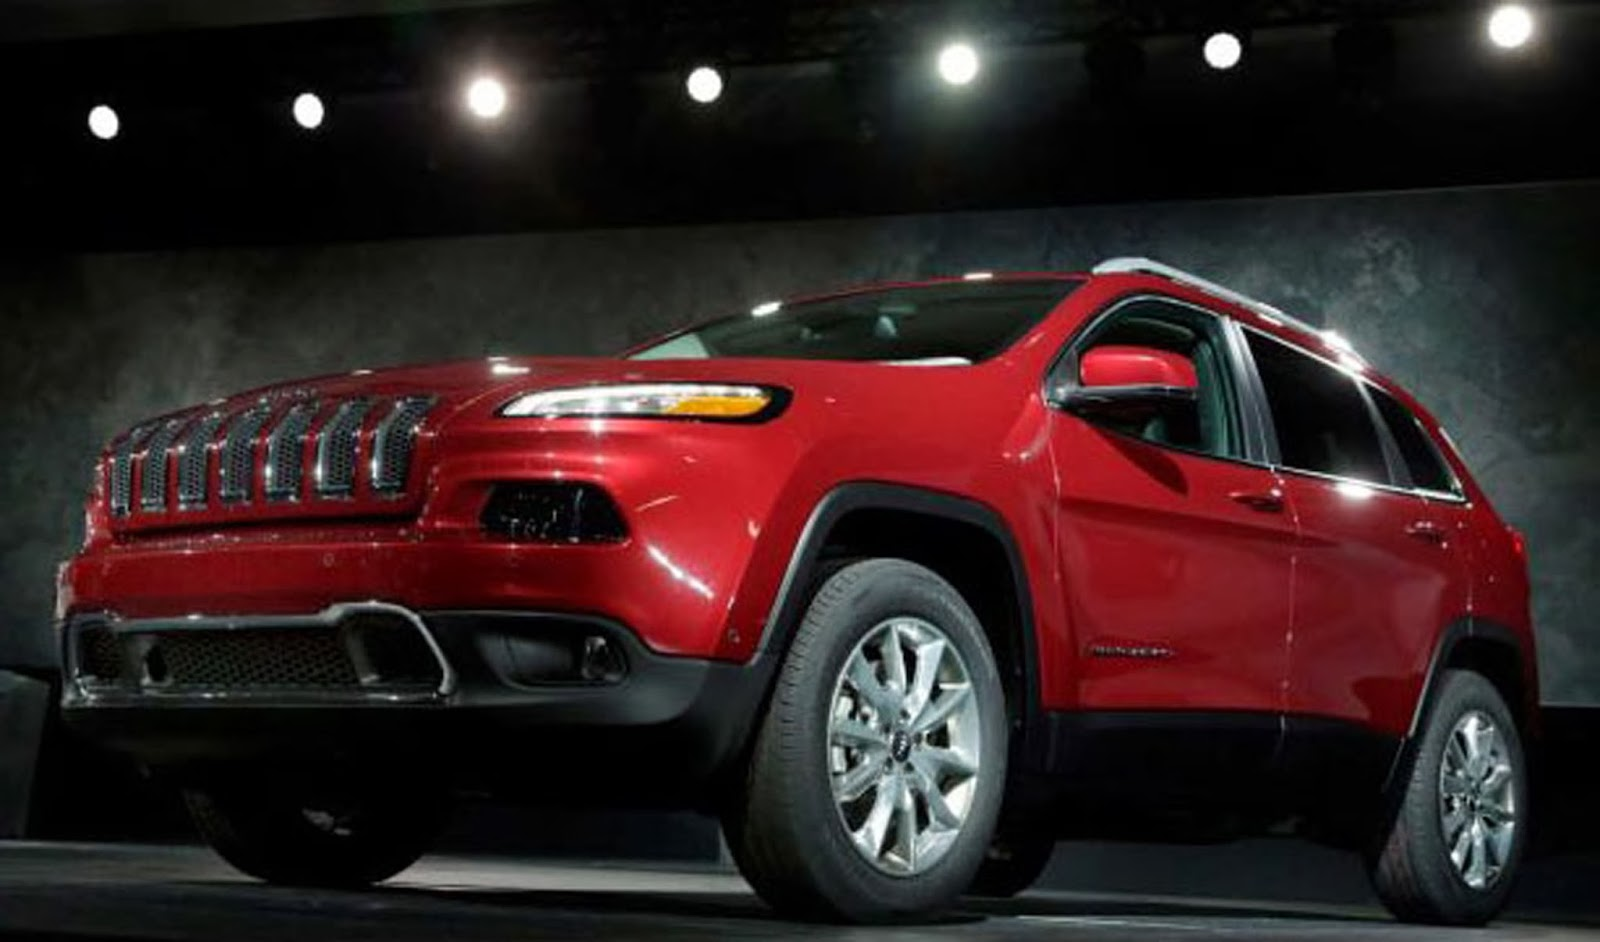 jeep cherokee 2014 new car price specification review images. Black Bedroom Furniture Sets. Home Design Ideas